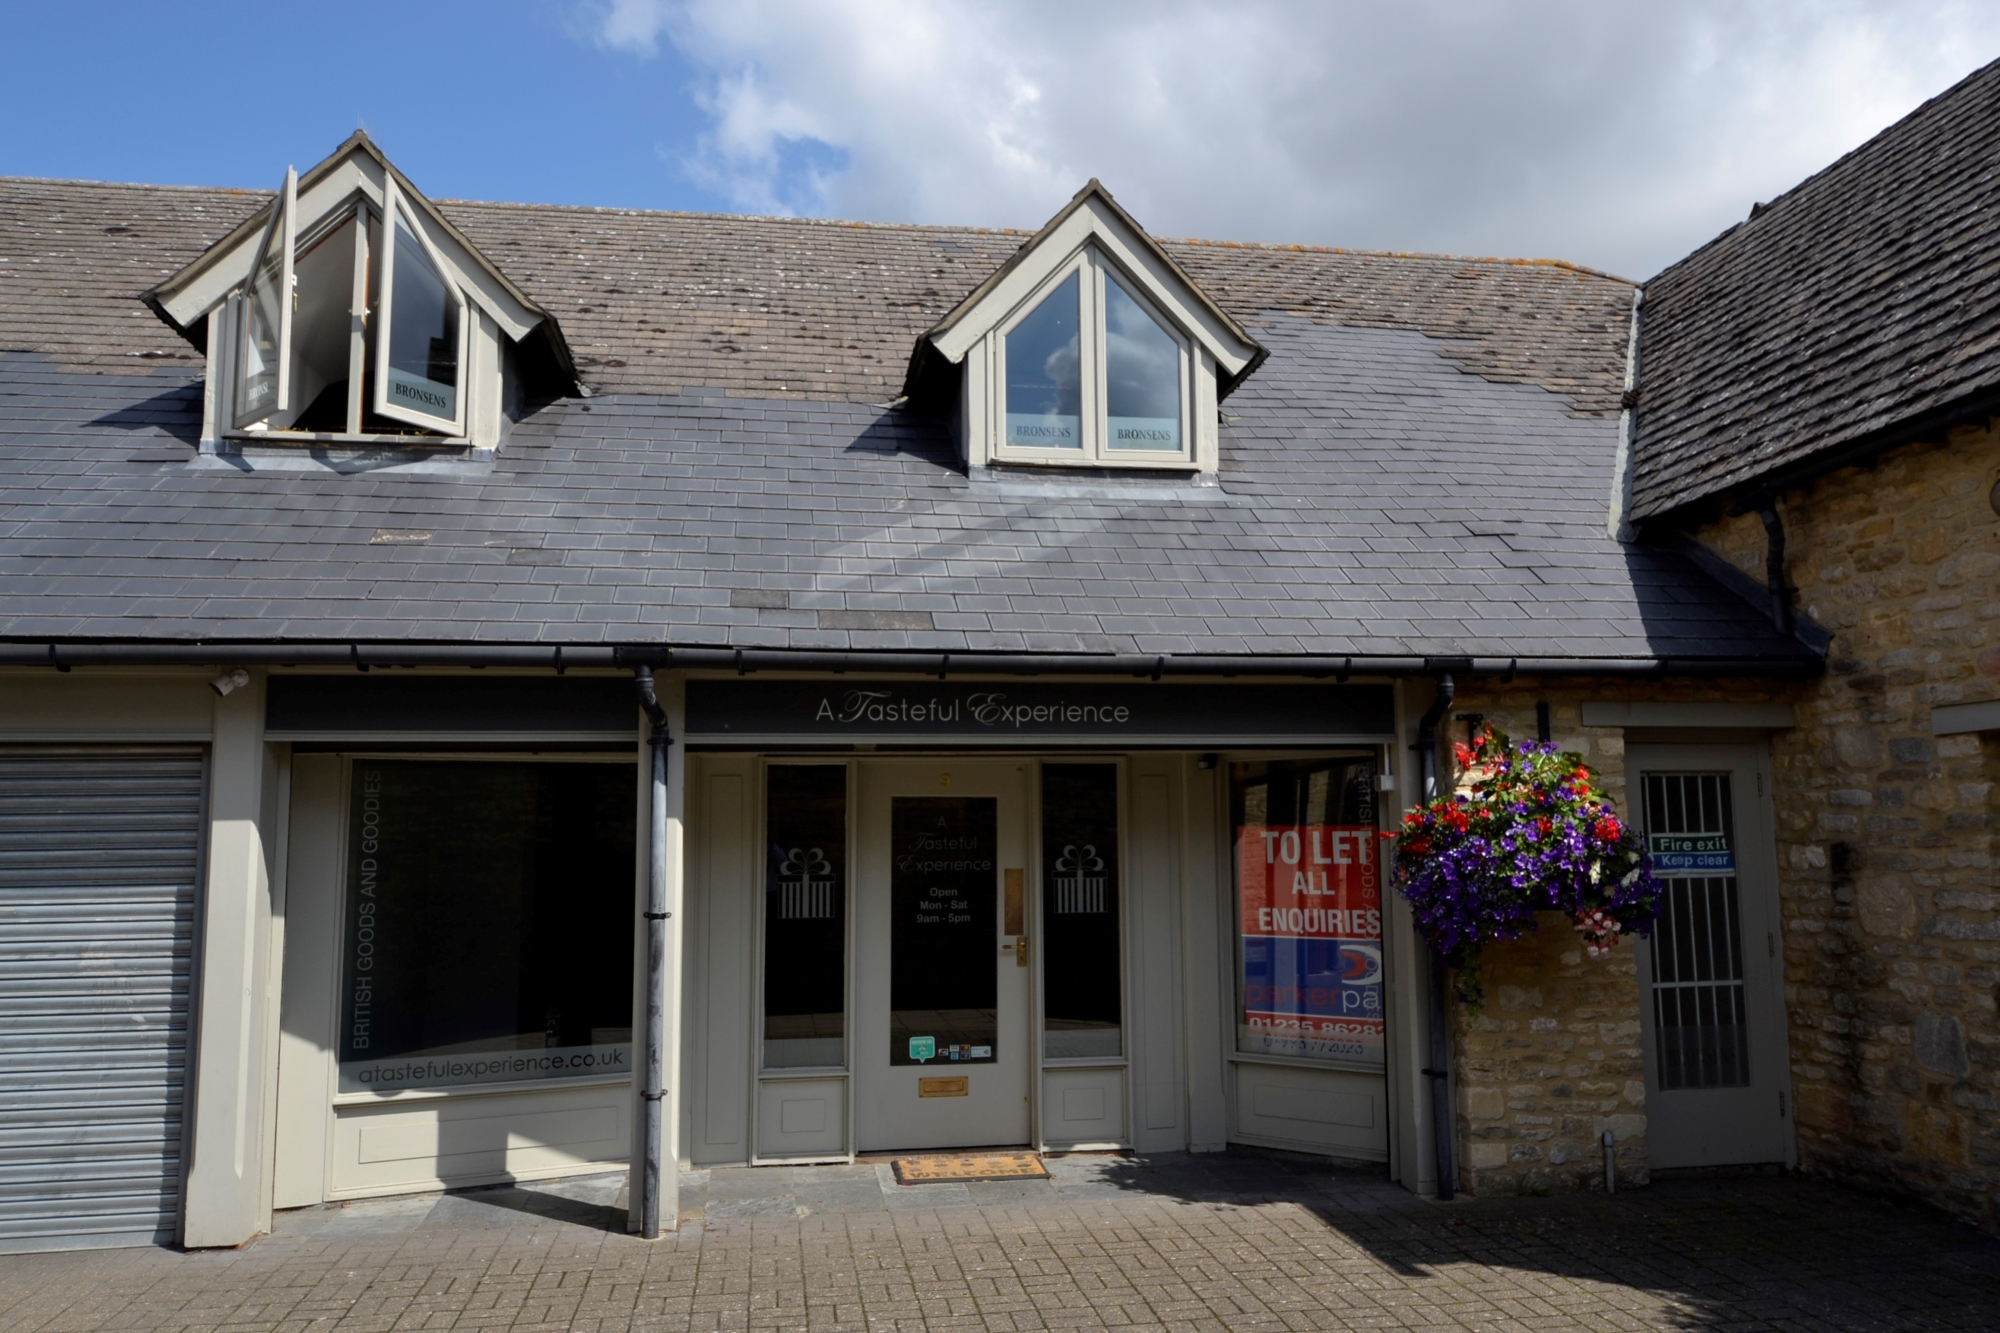 A1 retail unit Witney town centre near Woolgate